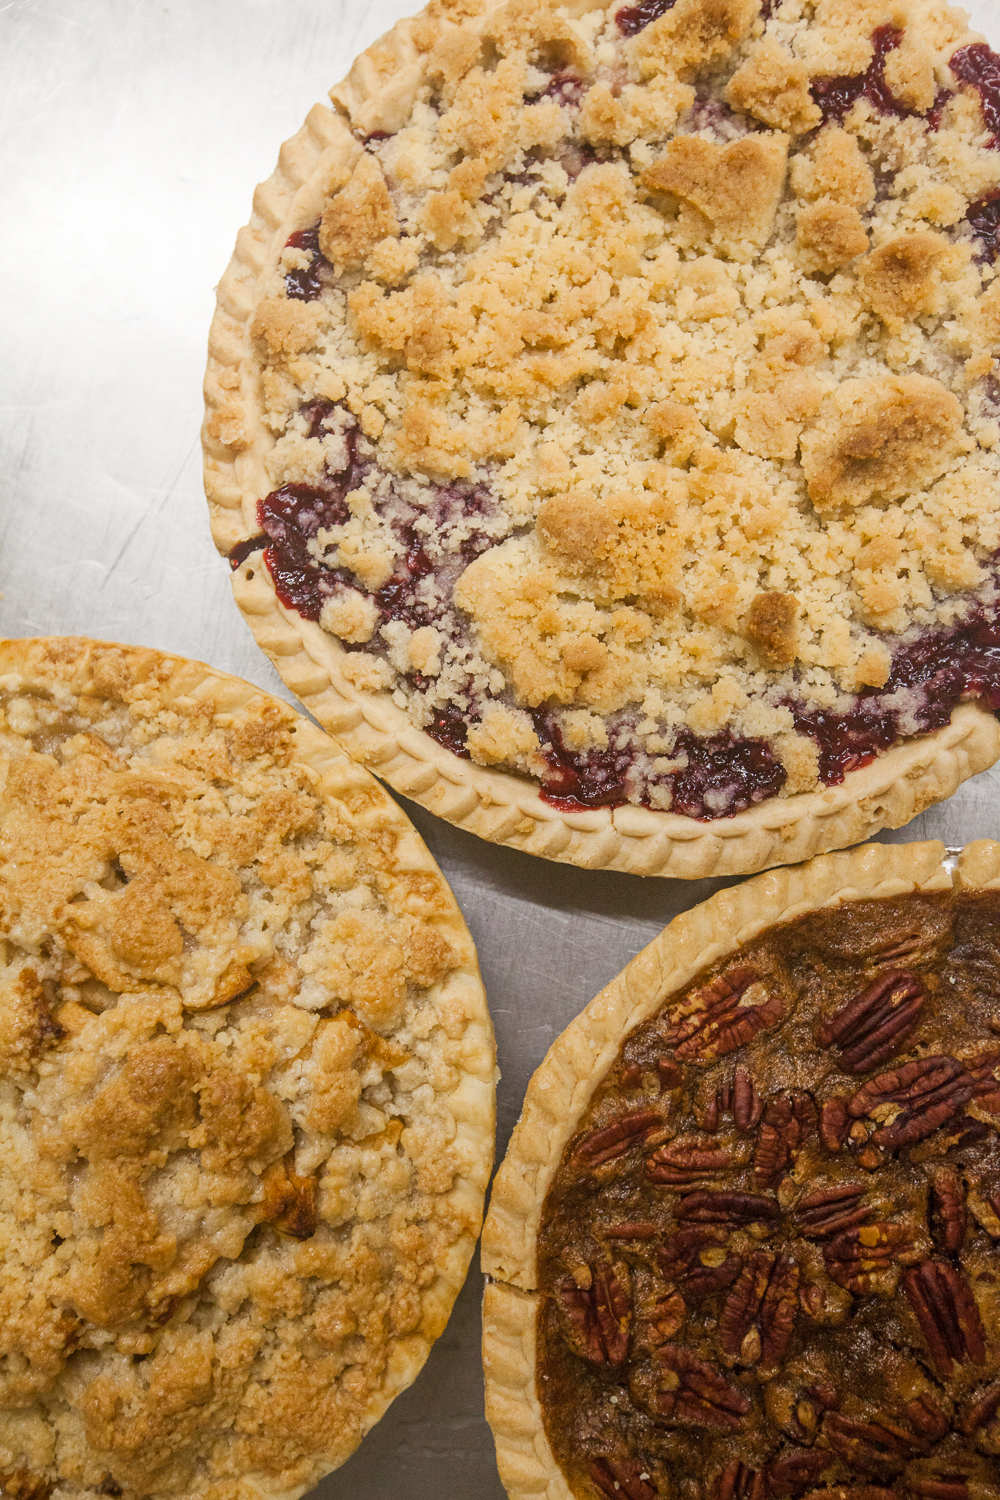 mana-foods-fresh-baked-thanksgiving-pies-7.jpg